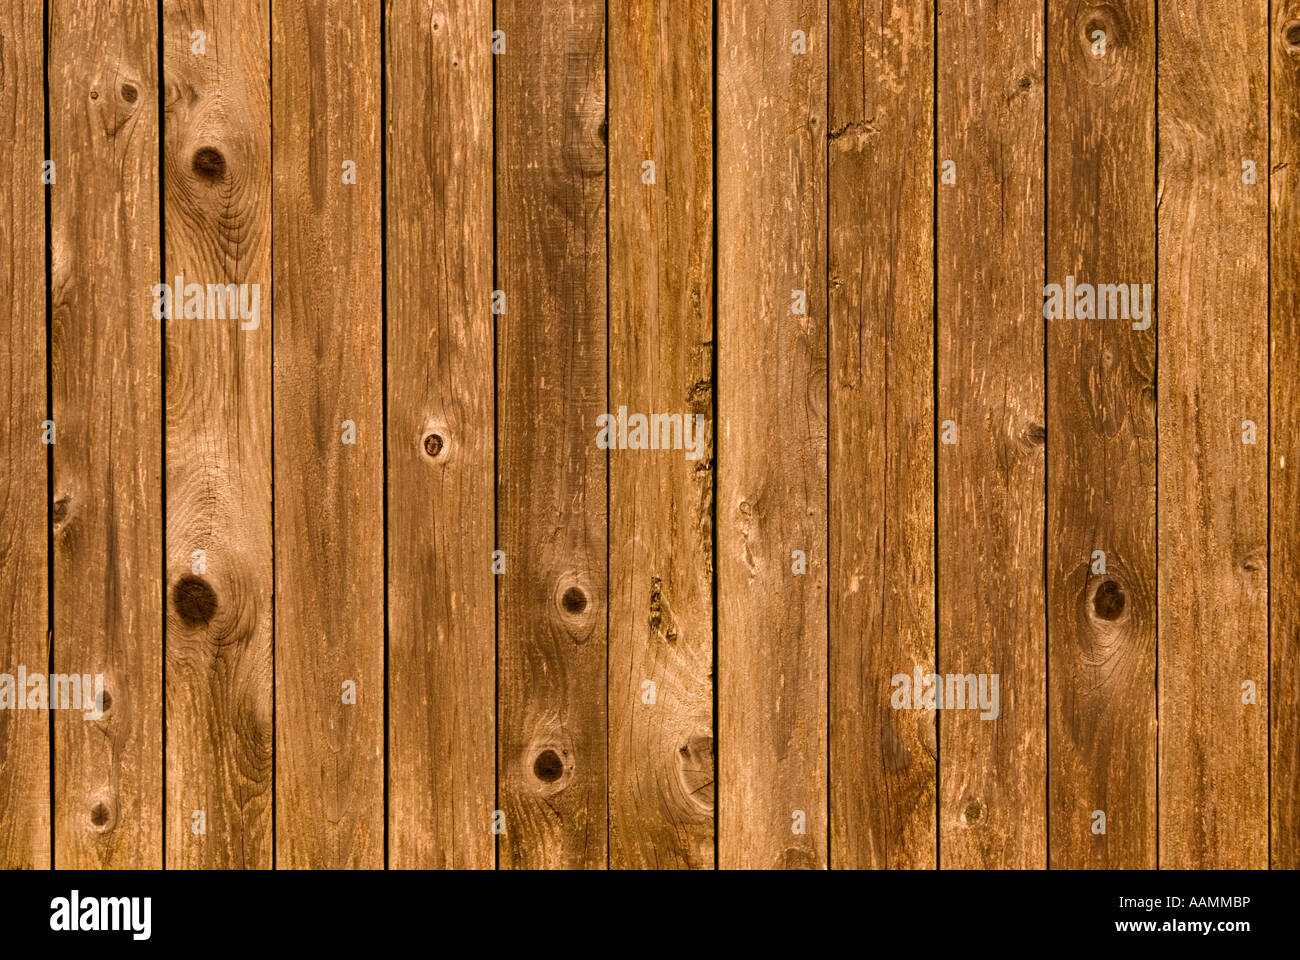 close up of wood fence - Stock Image